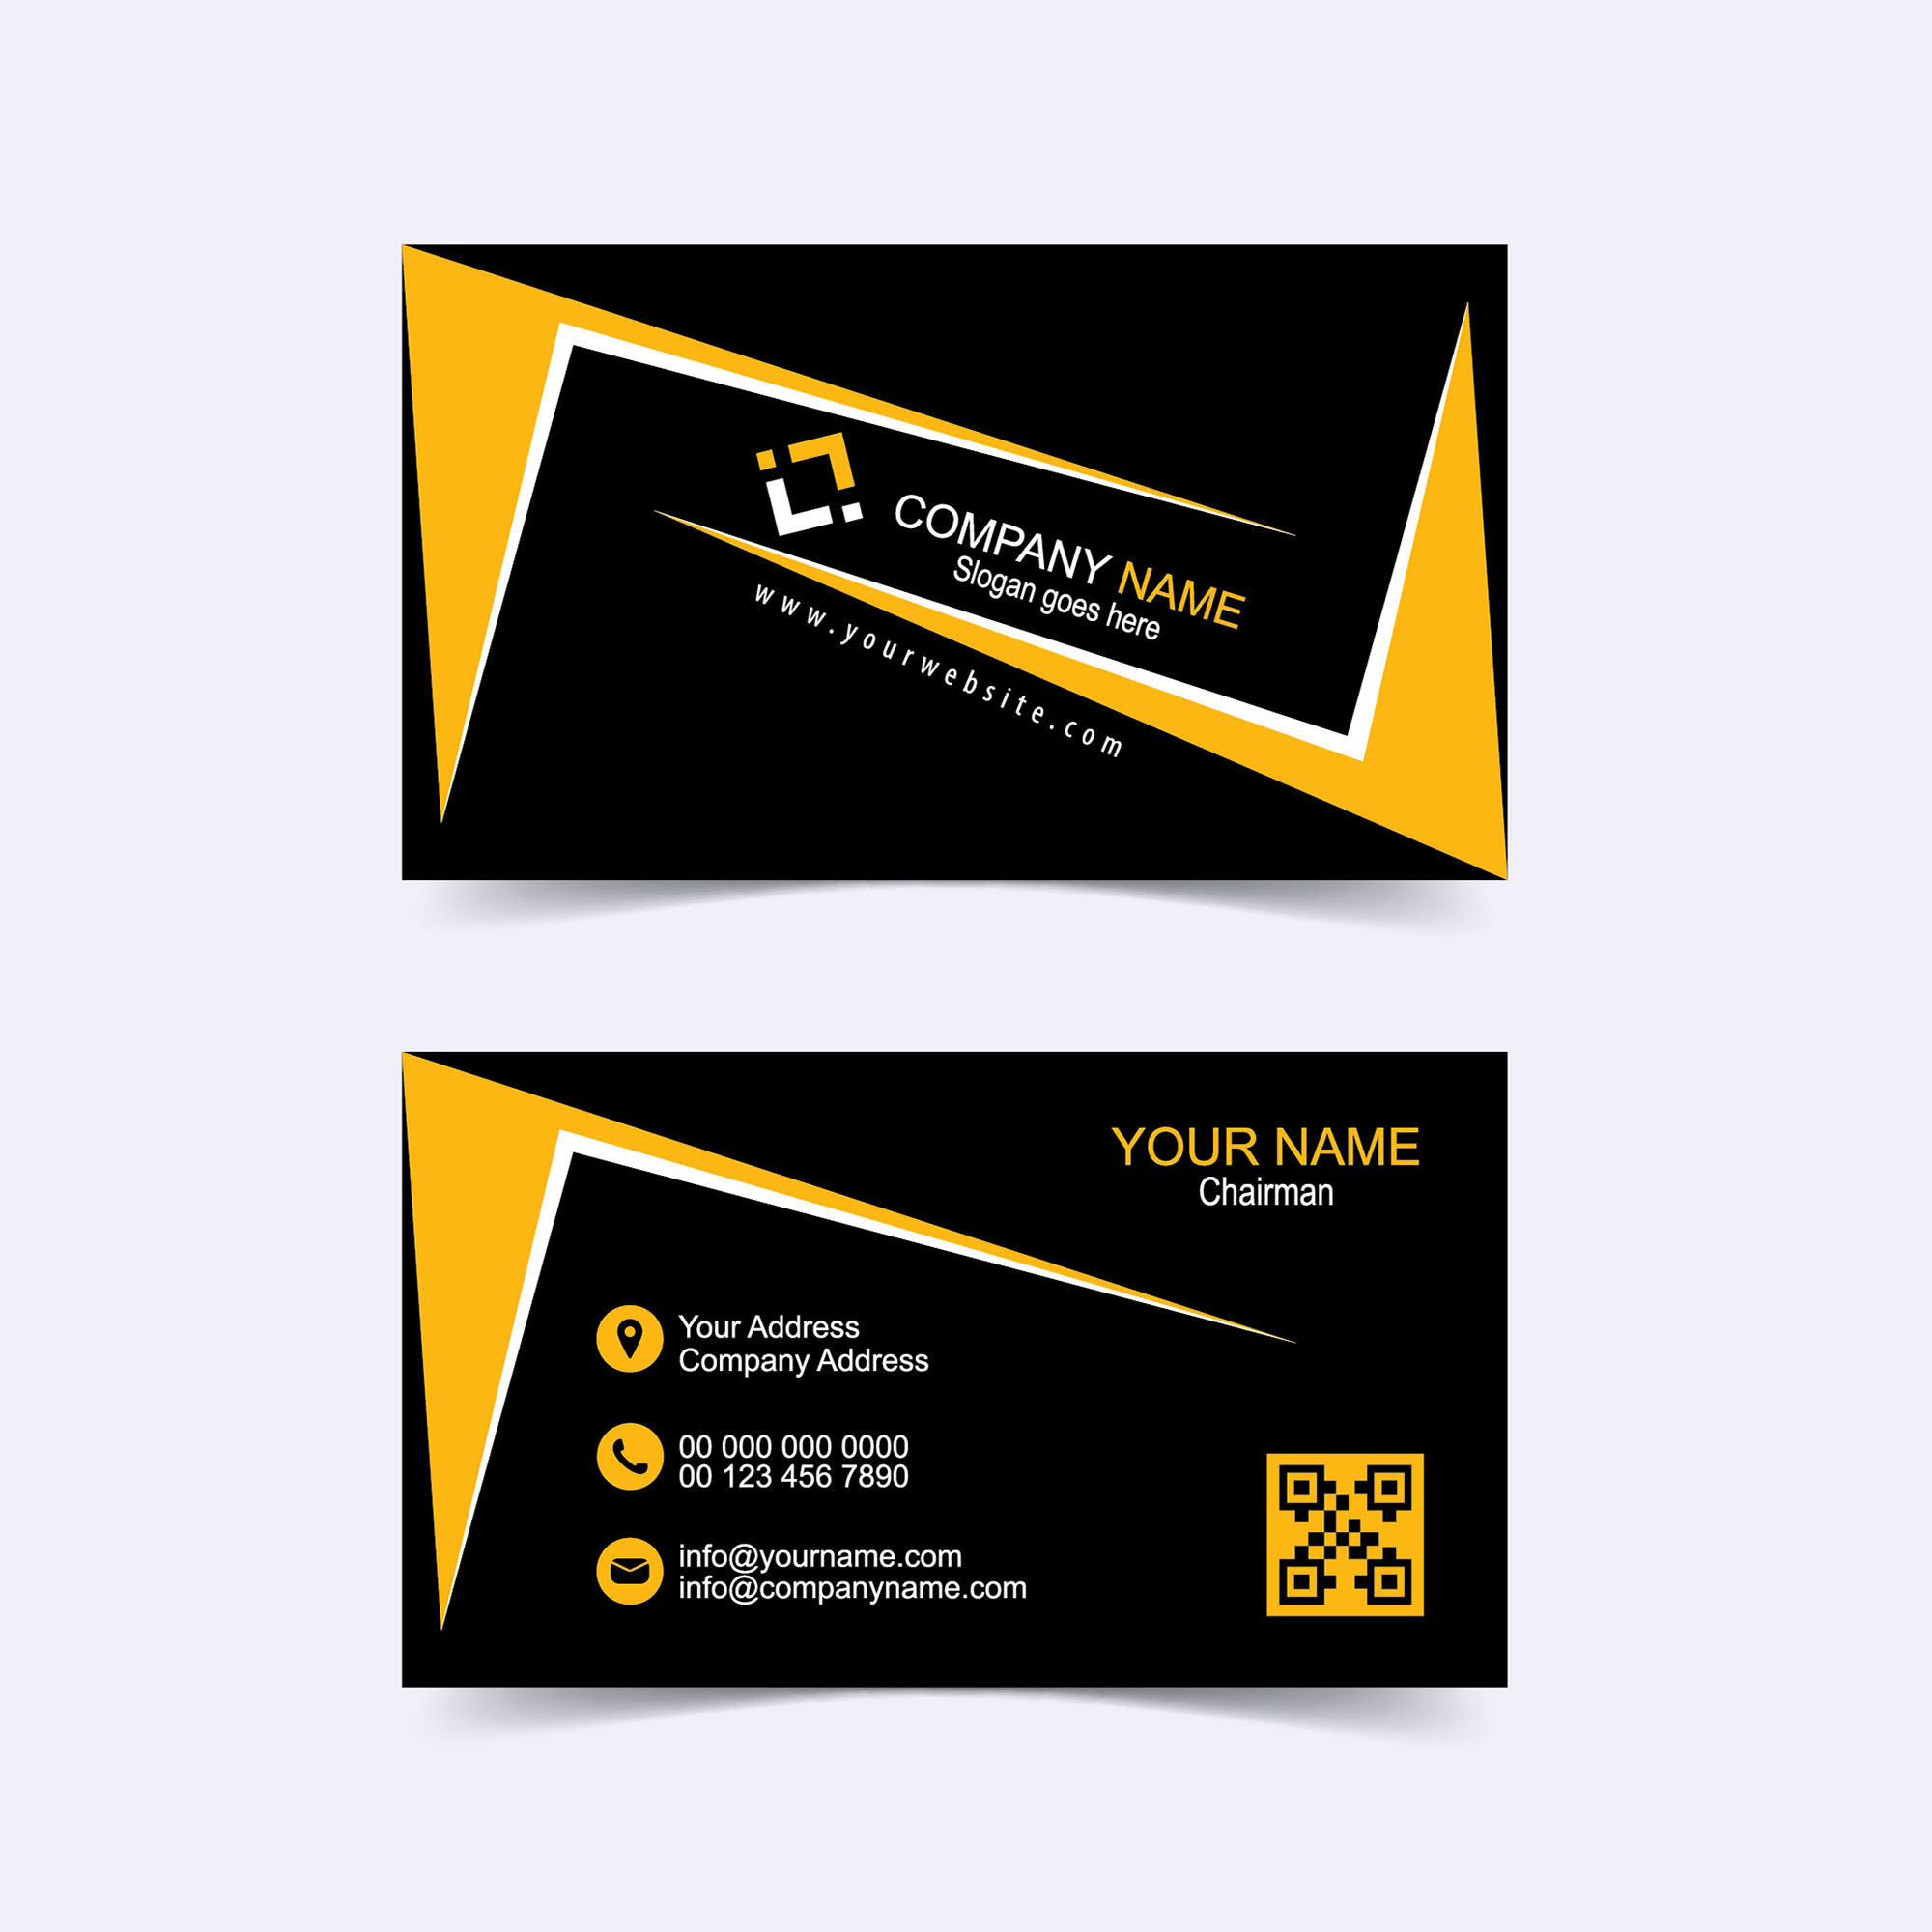 Modern business card template vector free download wisxi business card business cards business card design business card template design templates cheaphphosting Gallery